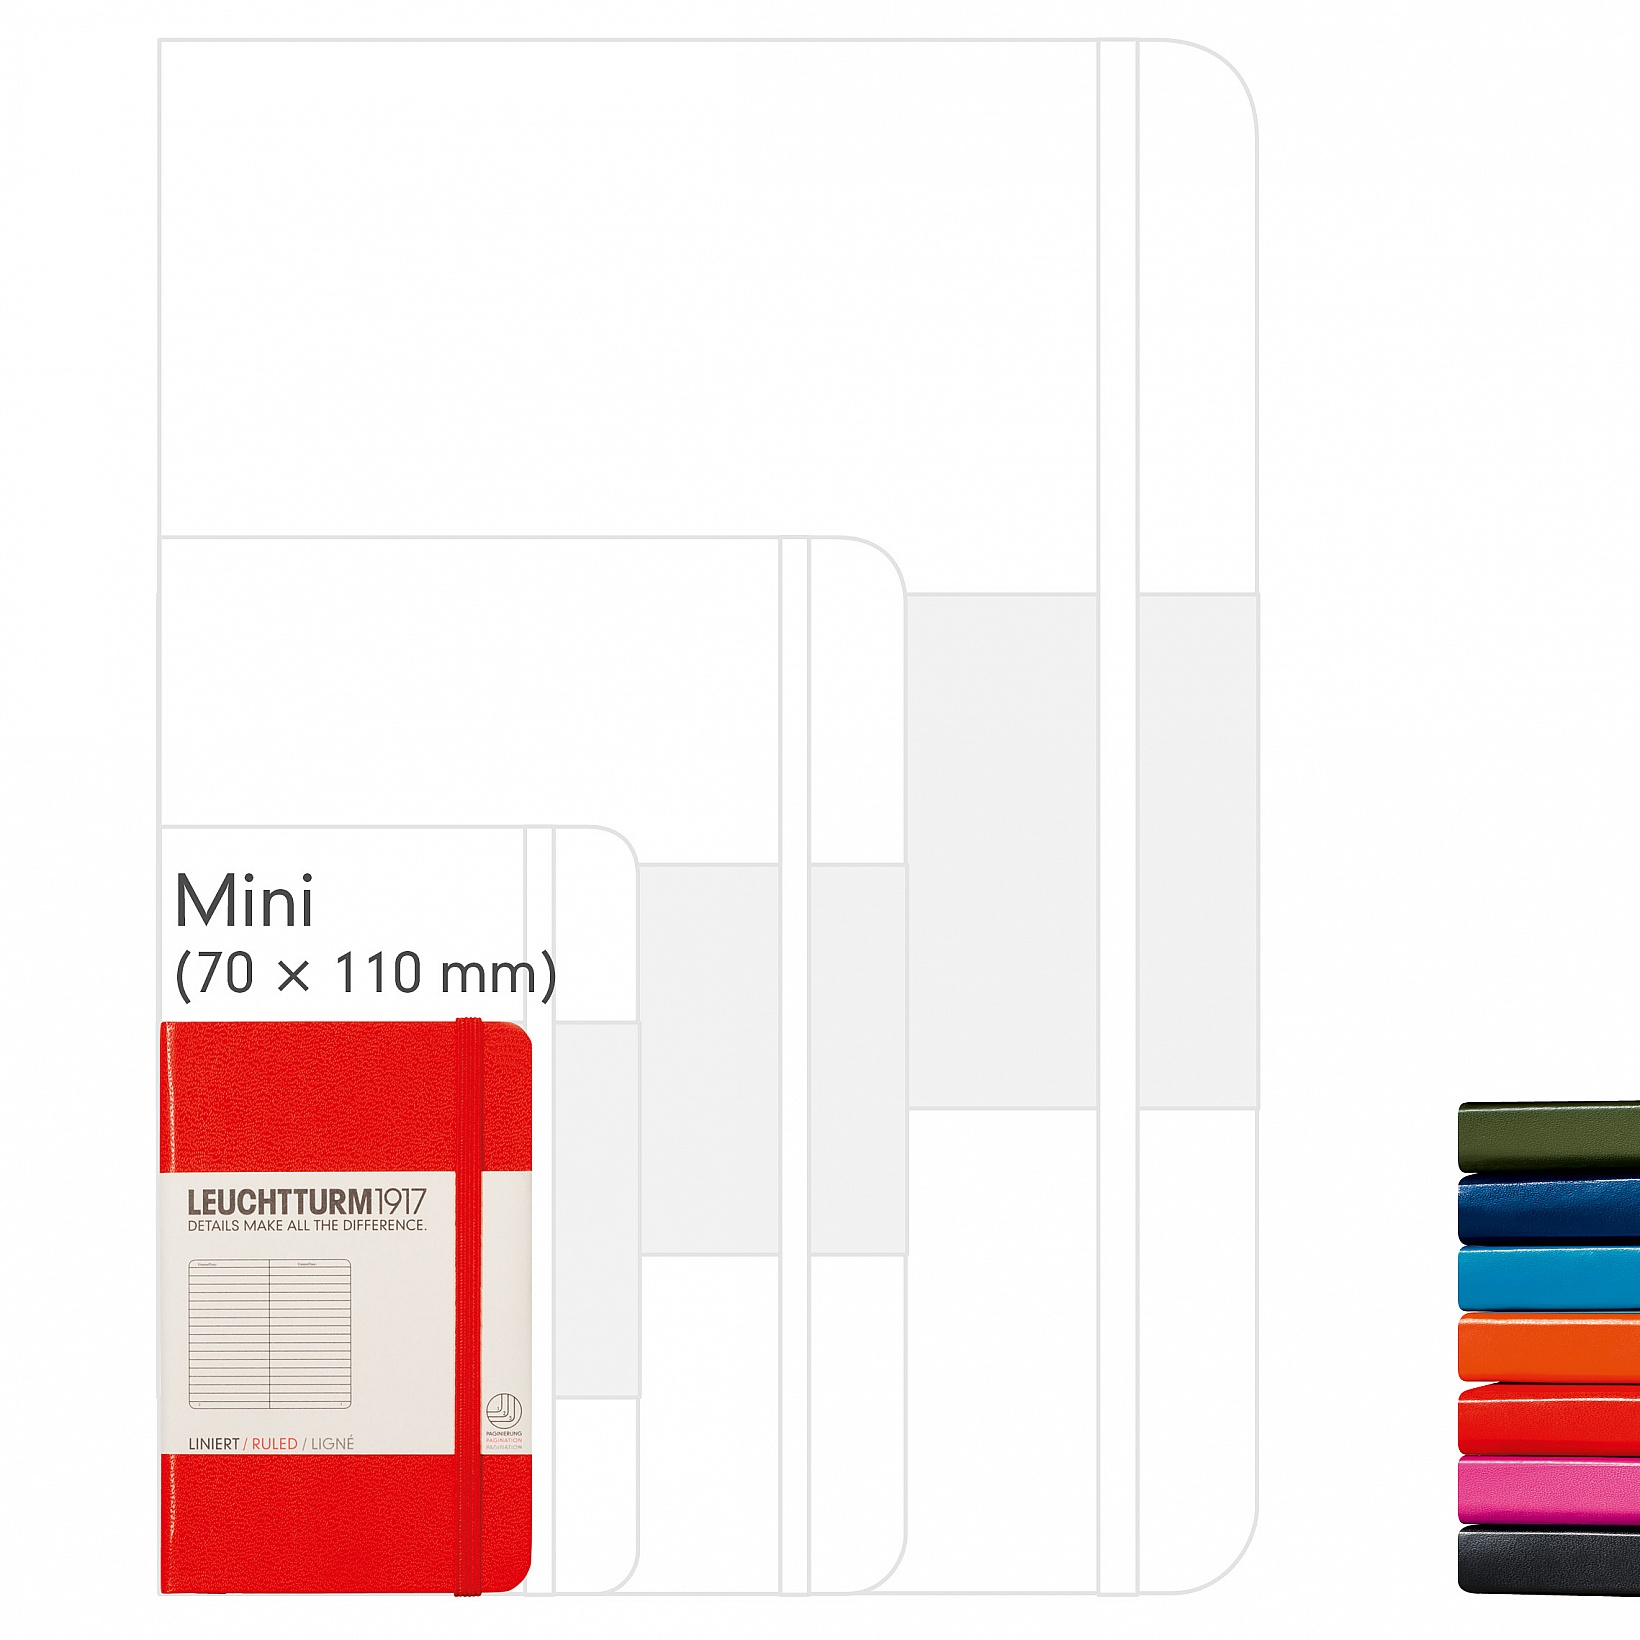 NOTEBOOK MINI (A7), HARDCOVER, 169 NUMBERED PAGES